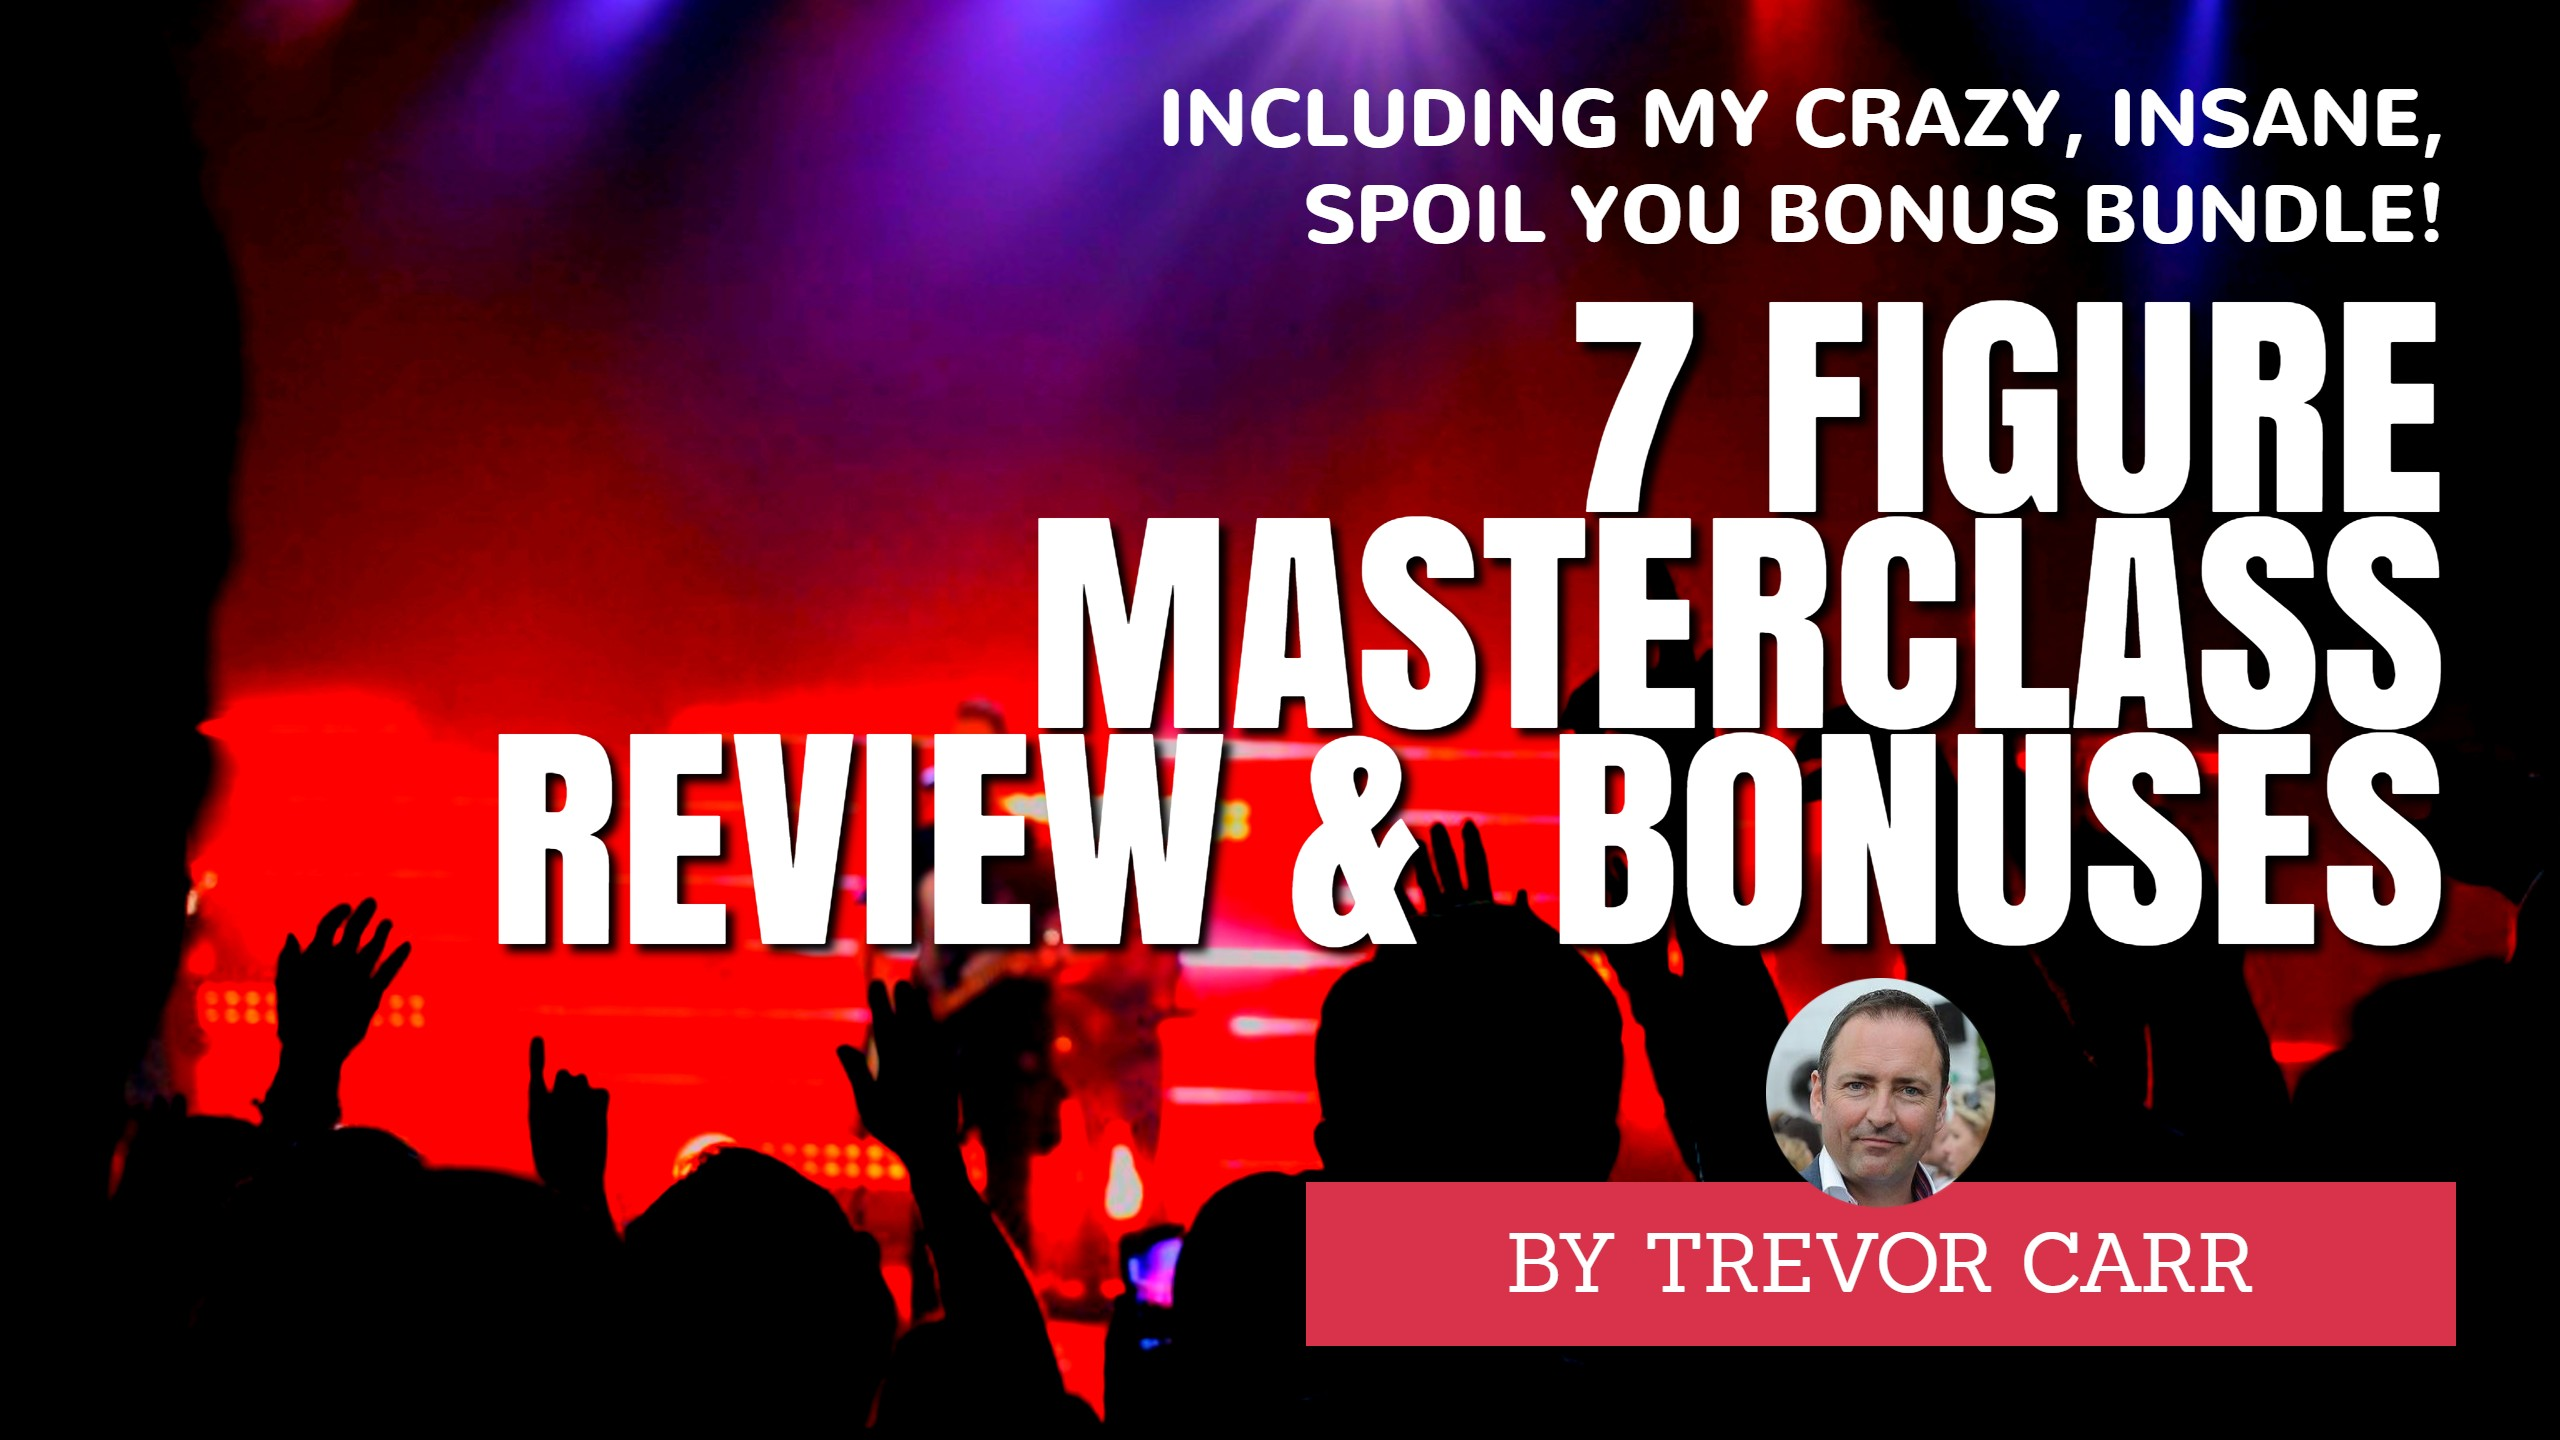 7 Figure Masterclass Review & Bonuses